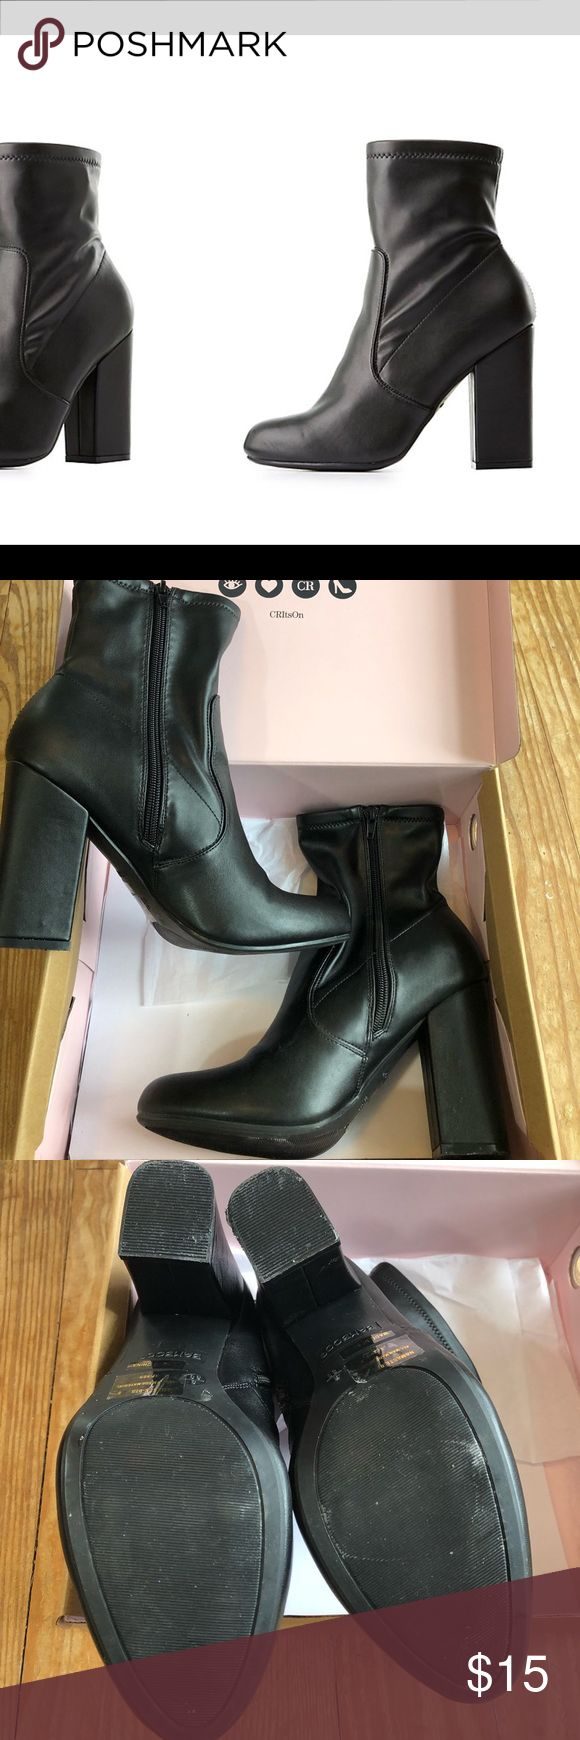 Faux Leather Sock Boots Super Cute Faux Leather Black Sock Boots.  Sold out in every size but 10!!  These look amazing with jeans, leggings, or a dress.   Worn once to the mall for about 3 hours. Just a touch too big on me  Charlotte Russe Shoes Ankle Boots & Booties